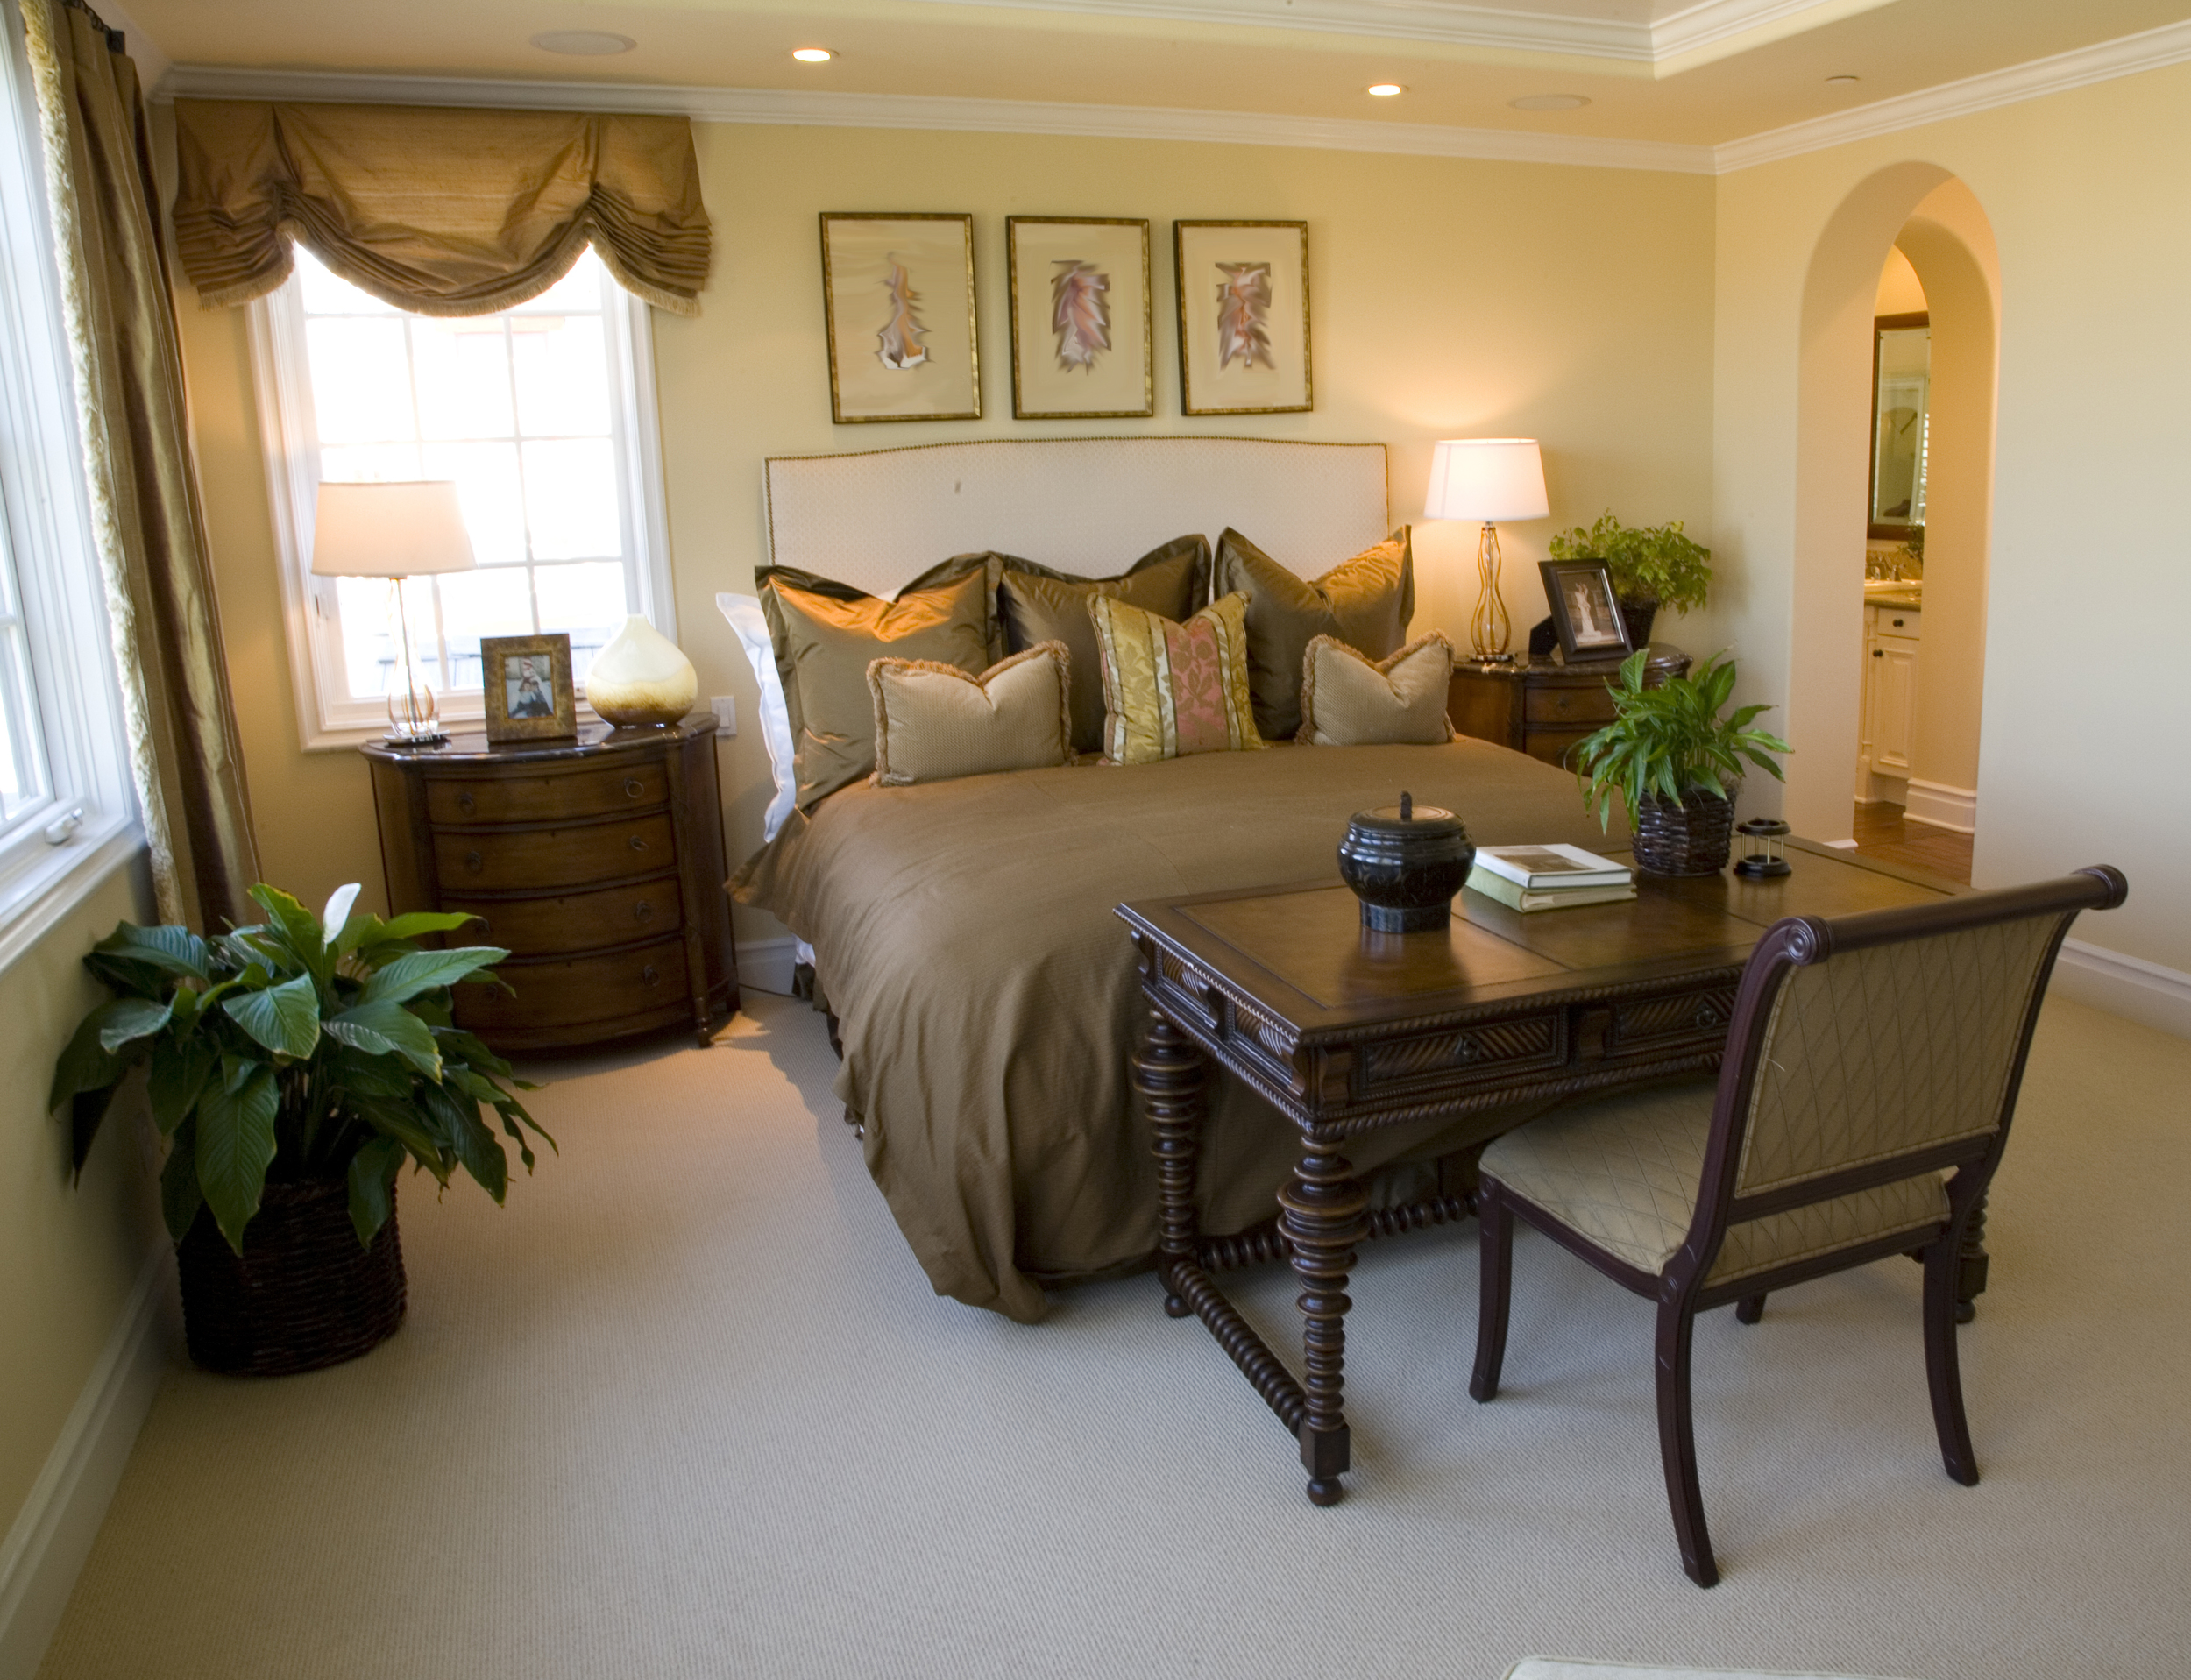 Ruvals-Guest-Bedroom-MOD.jpg